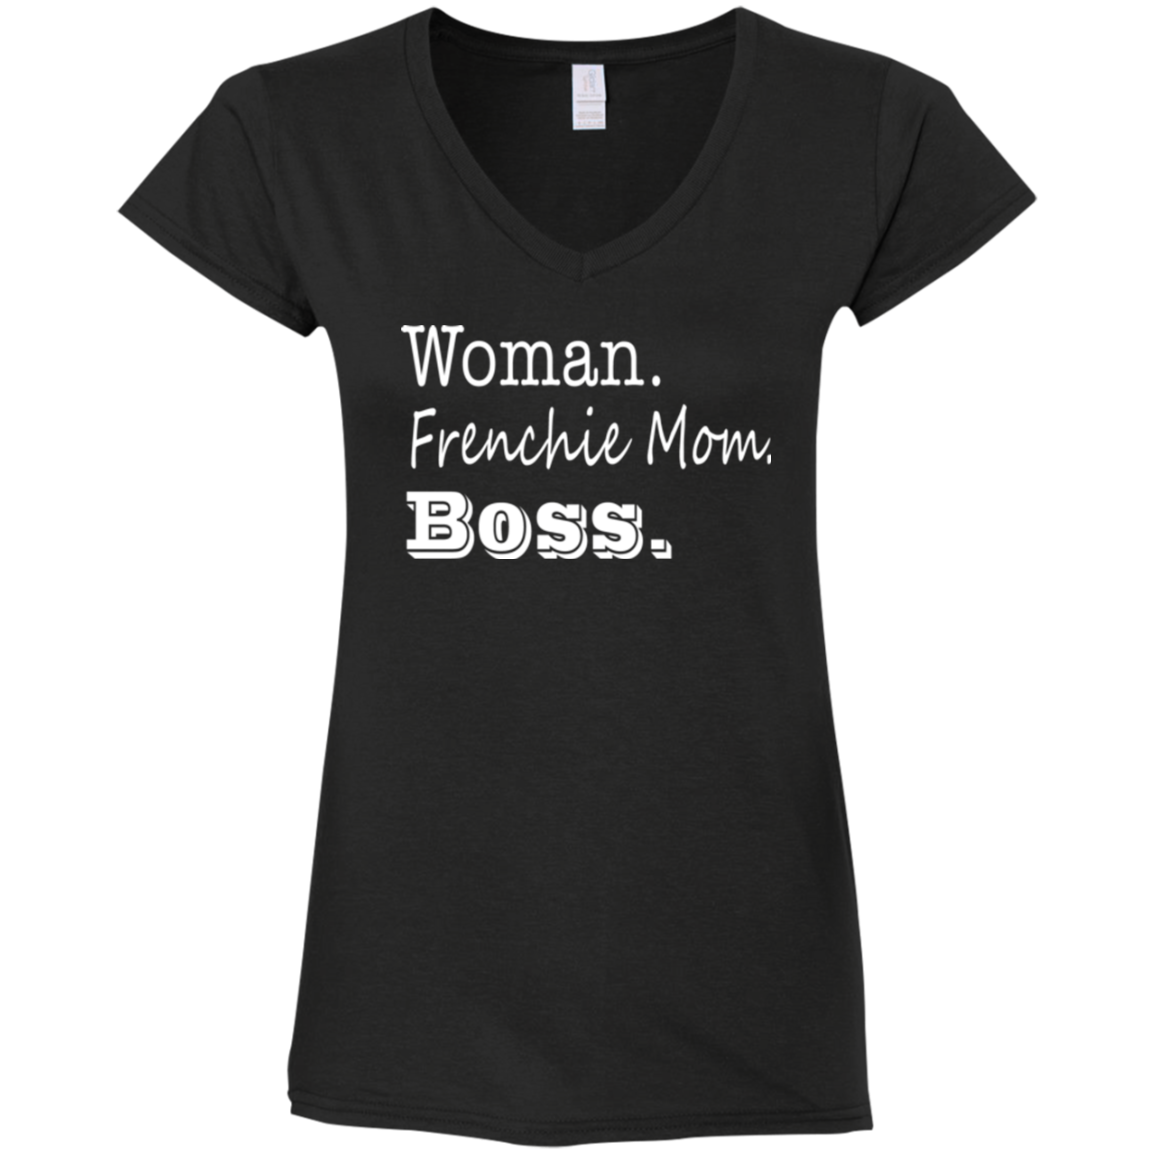 Woman Frenchie Mom Boss  Womens Fit V-Neck T-Shirt - Women's Tees I Love Frenchie Bulldogs